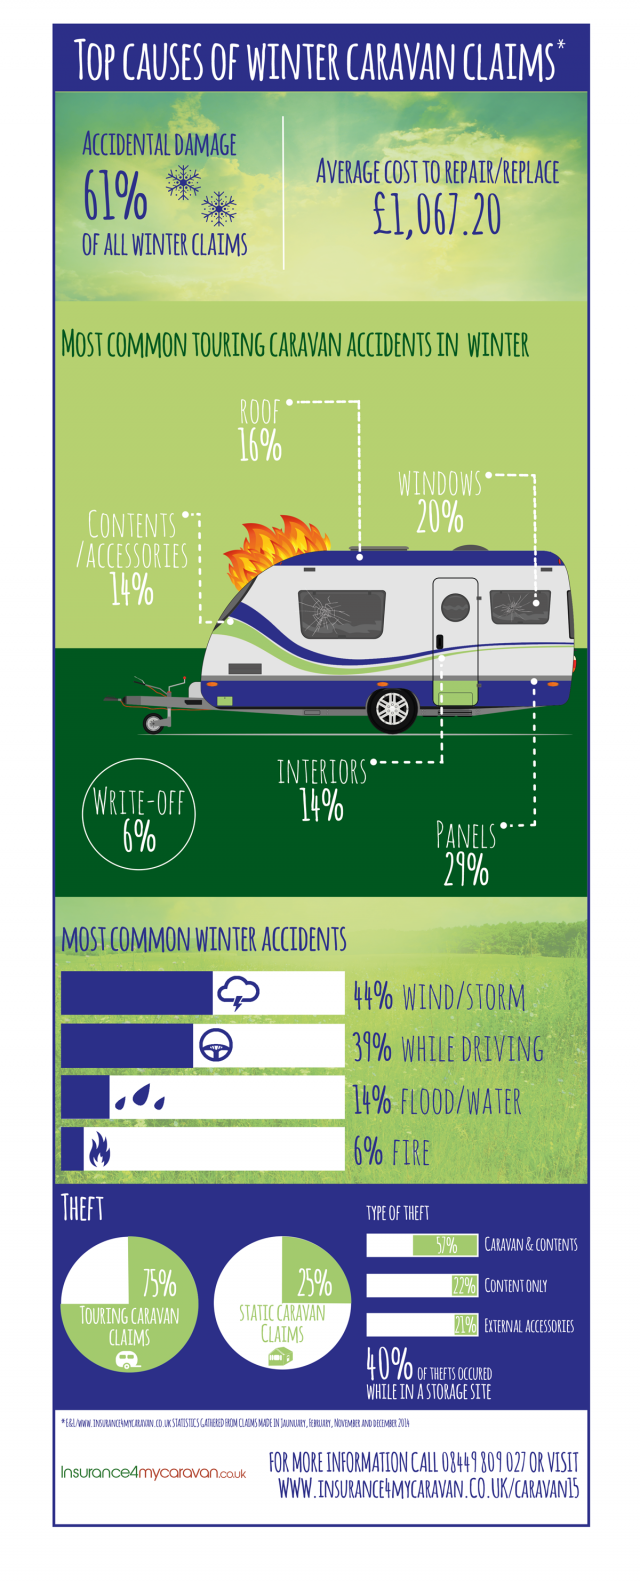 Top Causes Of Caravan Insurance Winter Claims Infographic